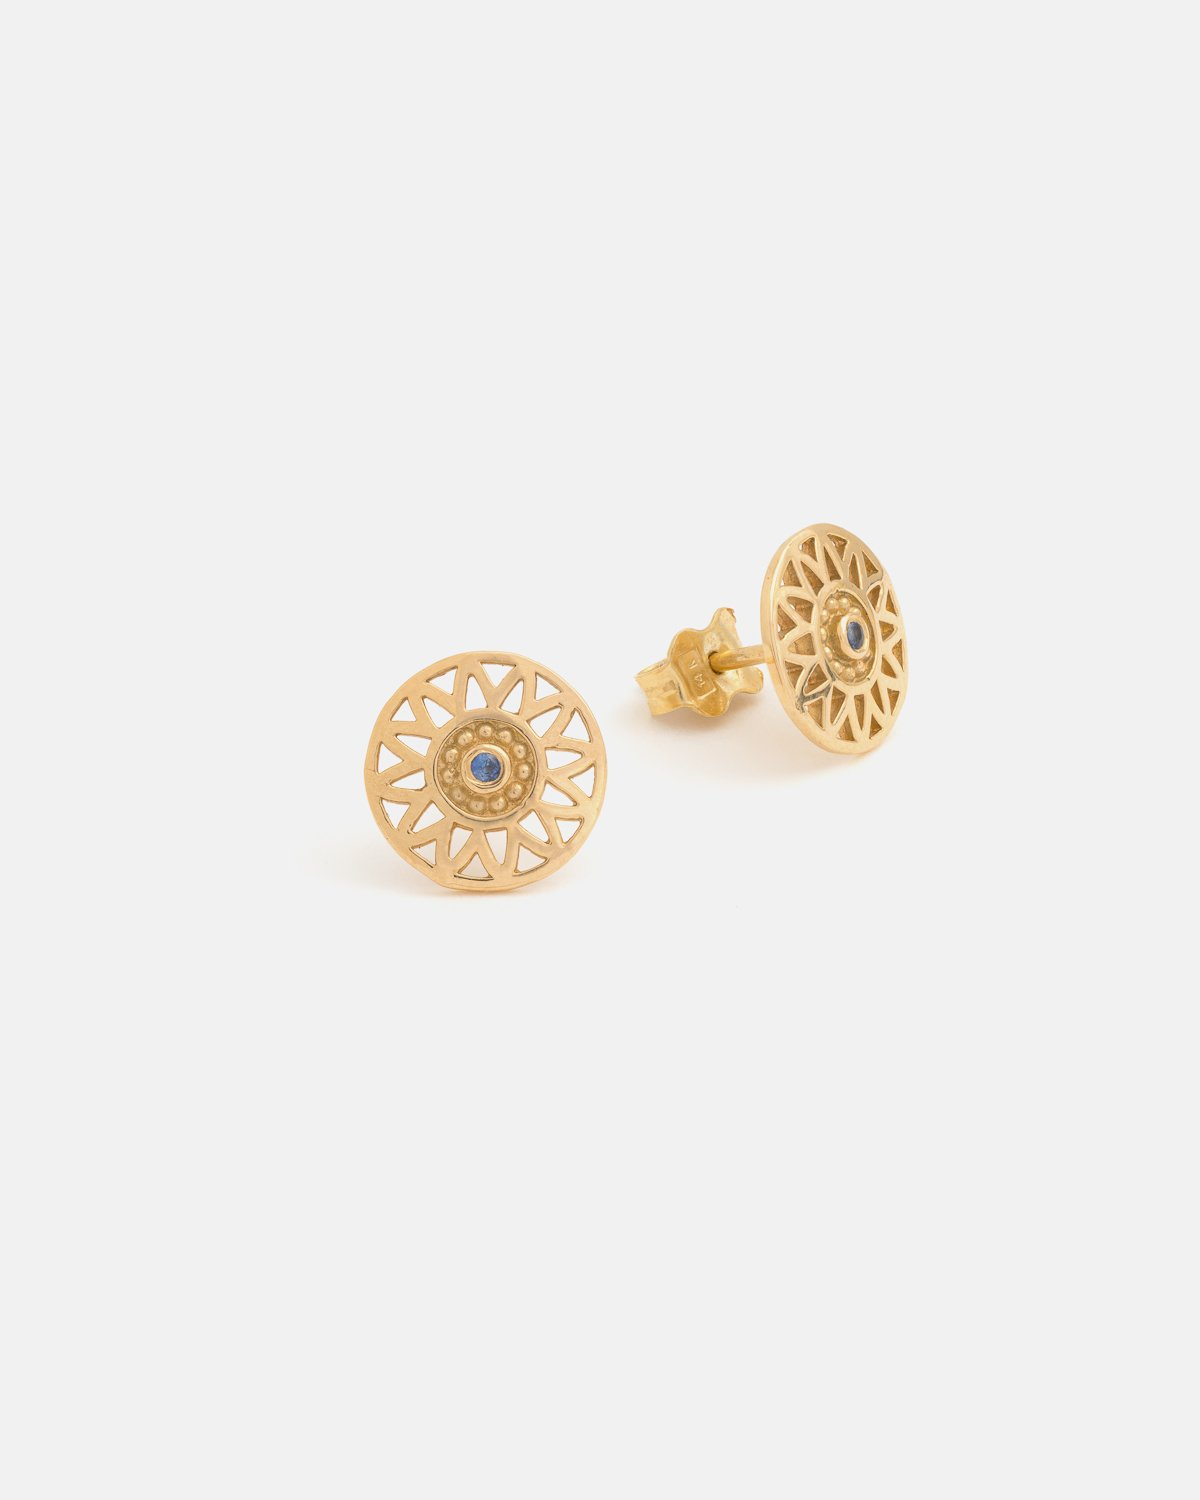 Helios Earrings in Yellow Gold with a Sapphire